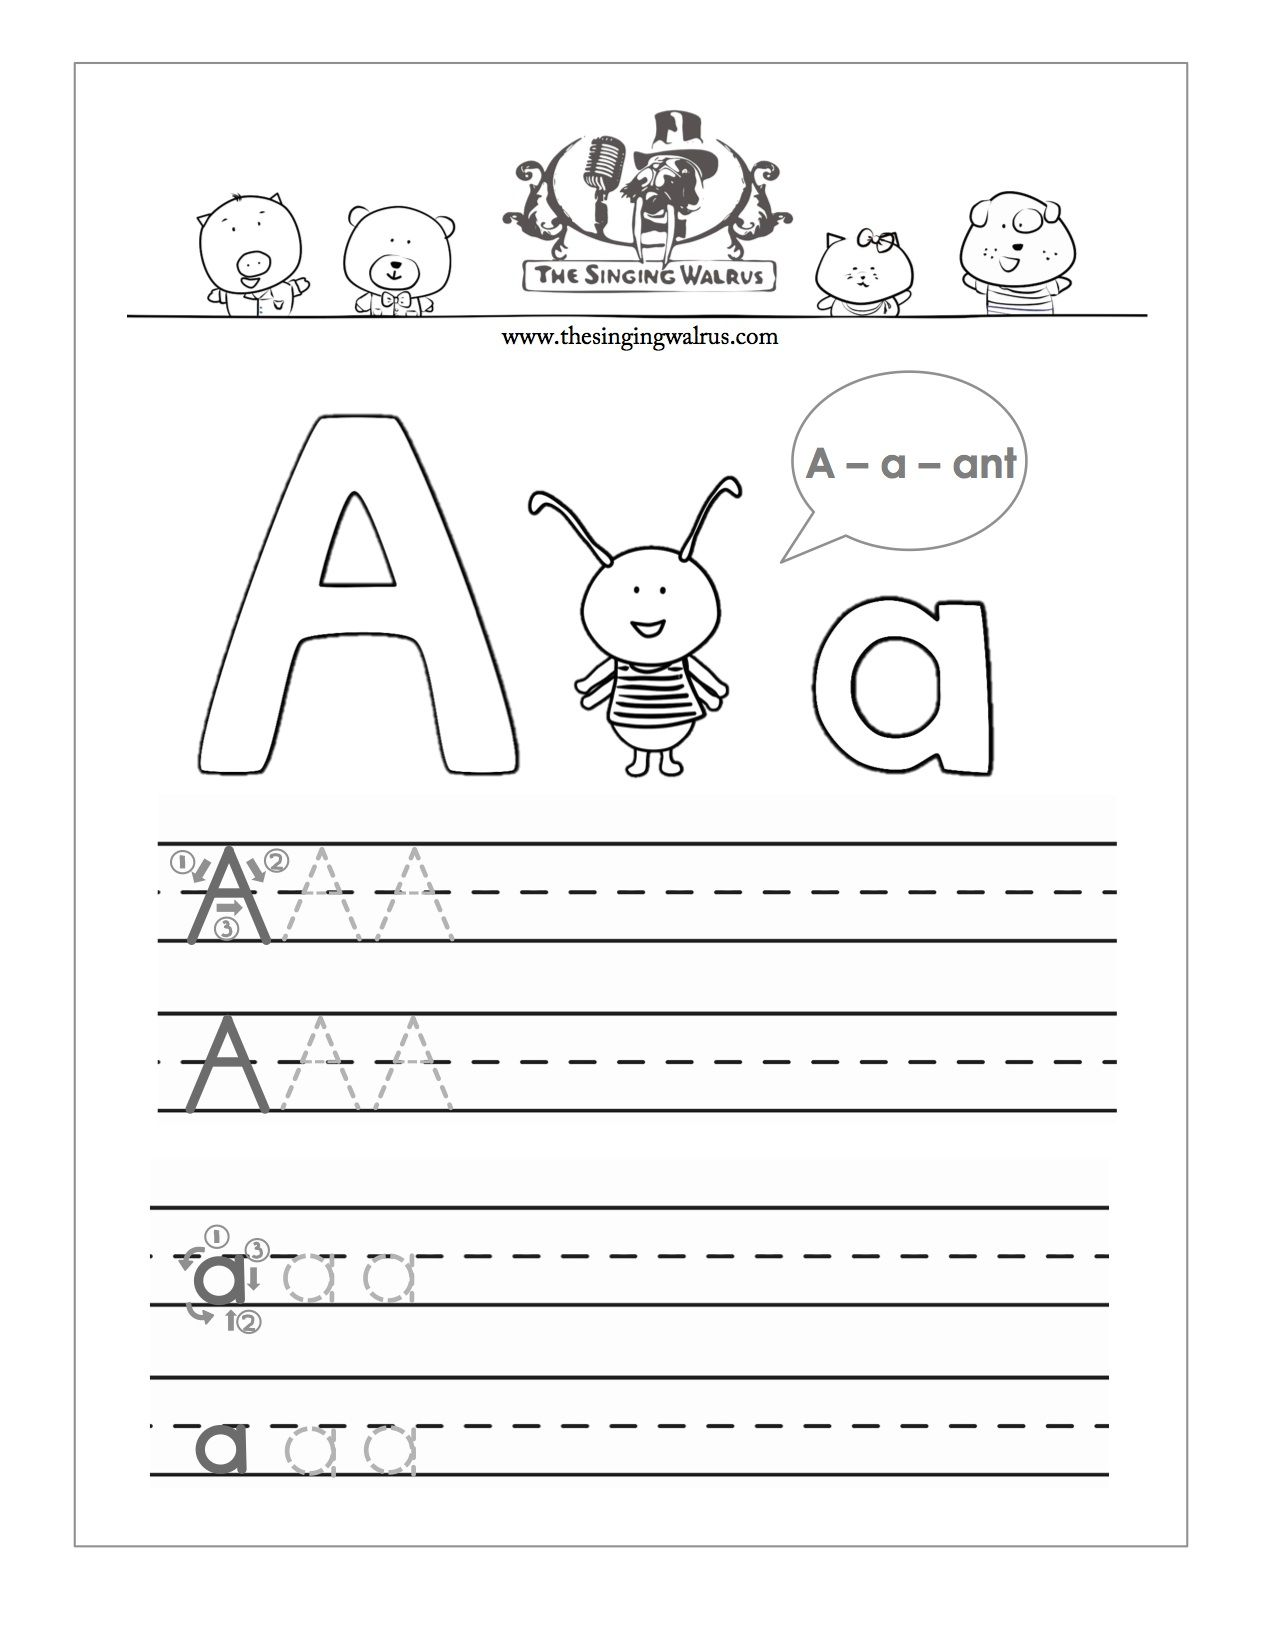 Free Printable Letter A Practice Sheet For Kids A Combination Of Colouring Page